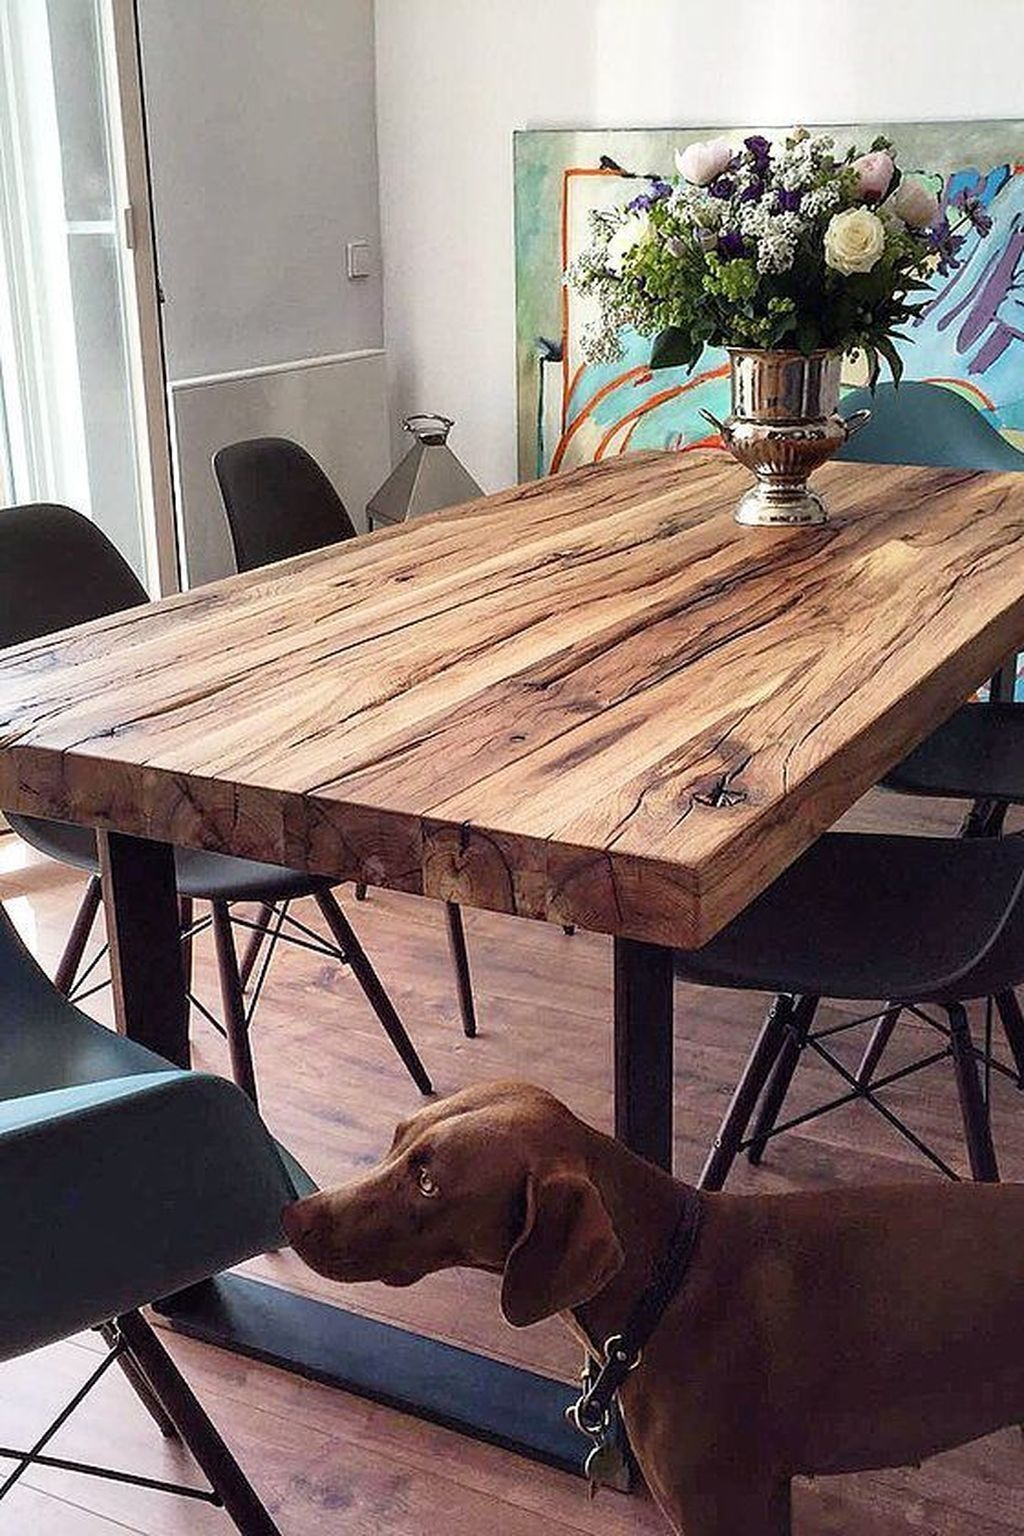 36 Unique And Creative Wooden Furniture Ideas For Your Home Decor – HOOMDESIGN